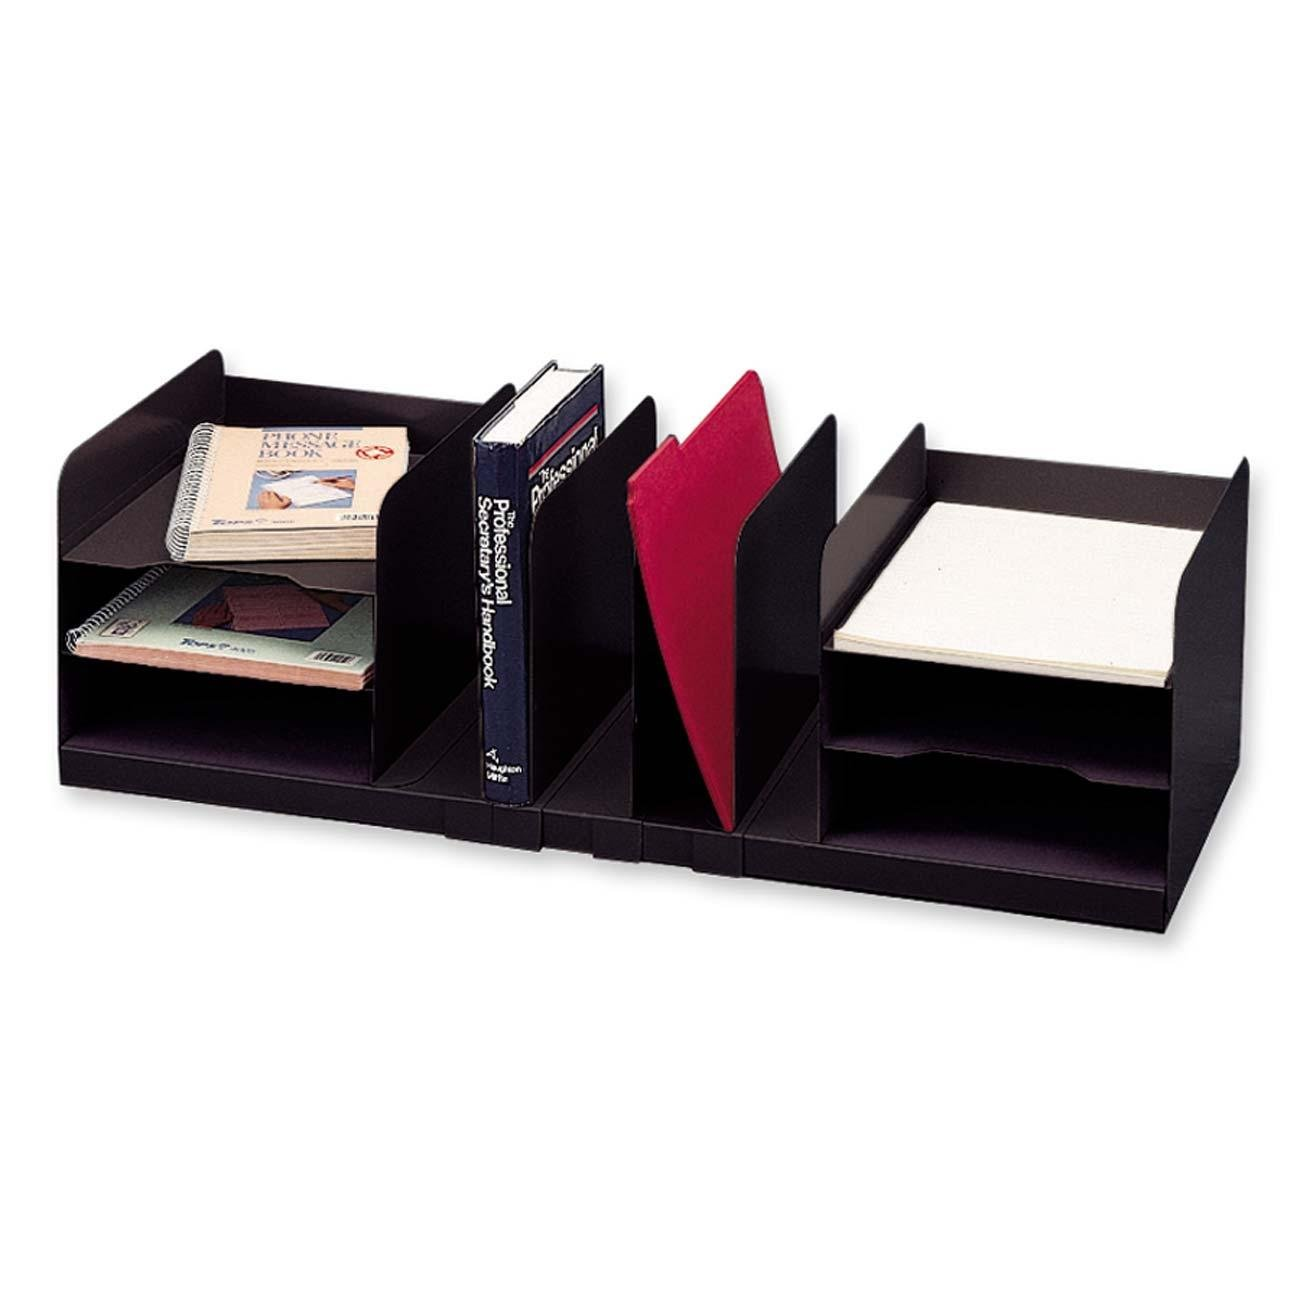 STEELMASTER Steel Combination Organizer with Adjustable Shelves, 30 x 8.13 x 11 Inches, Black (26420HVHABLA)